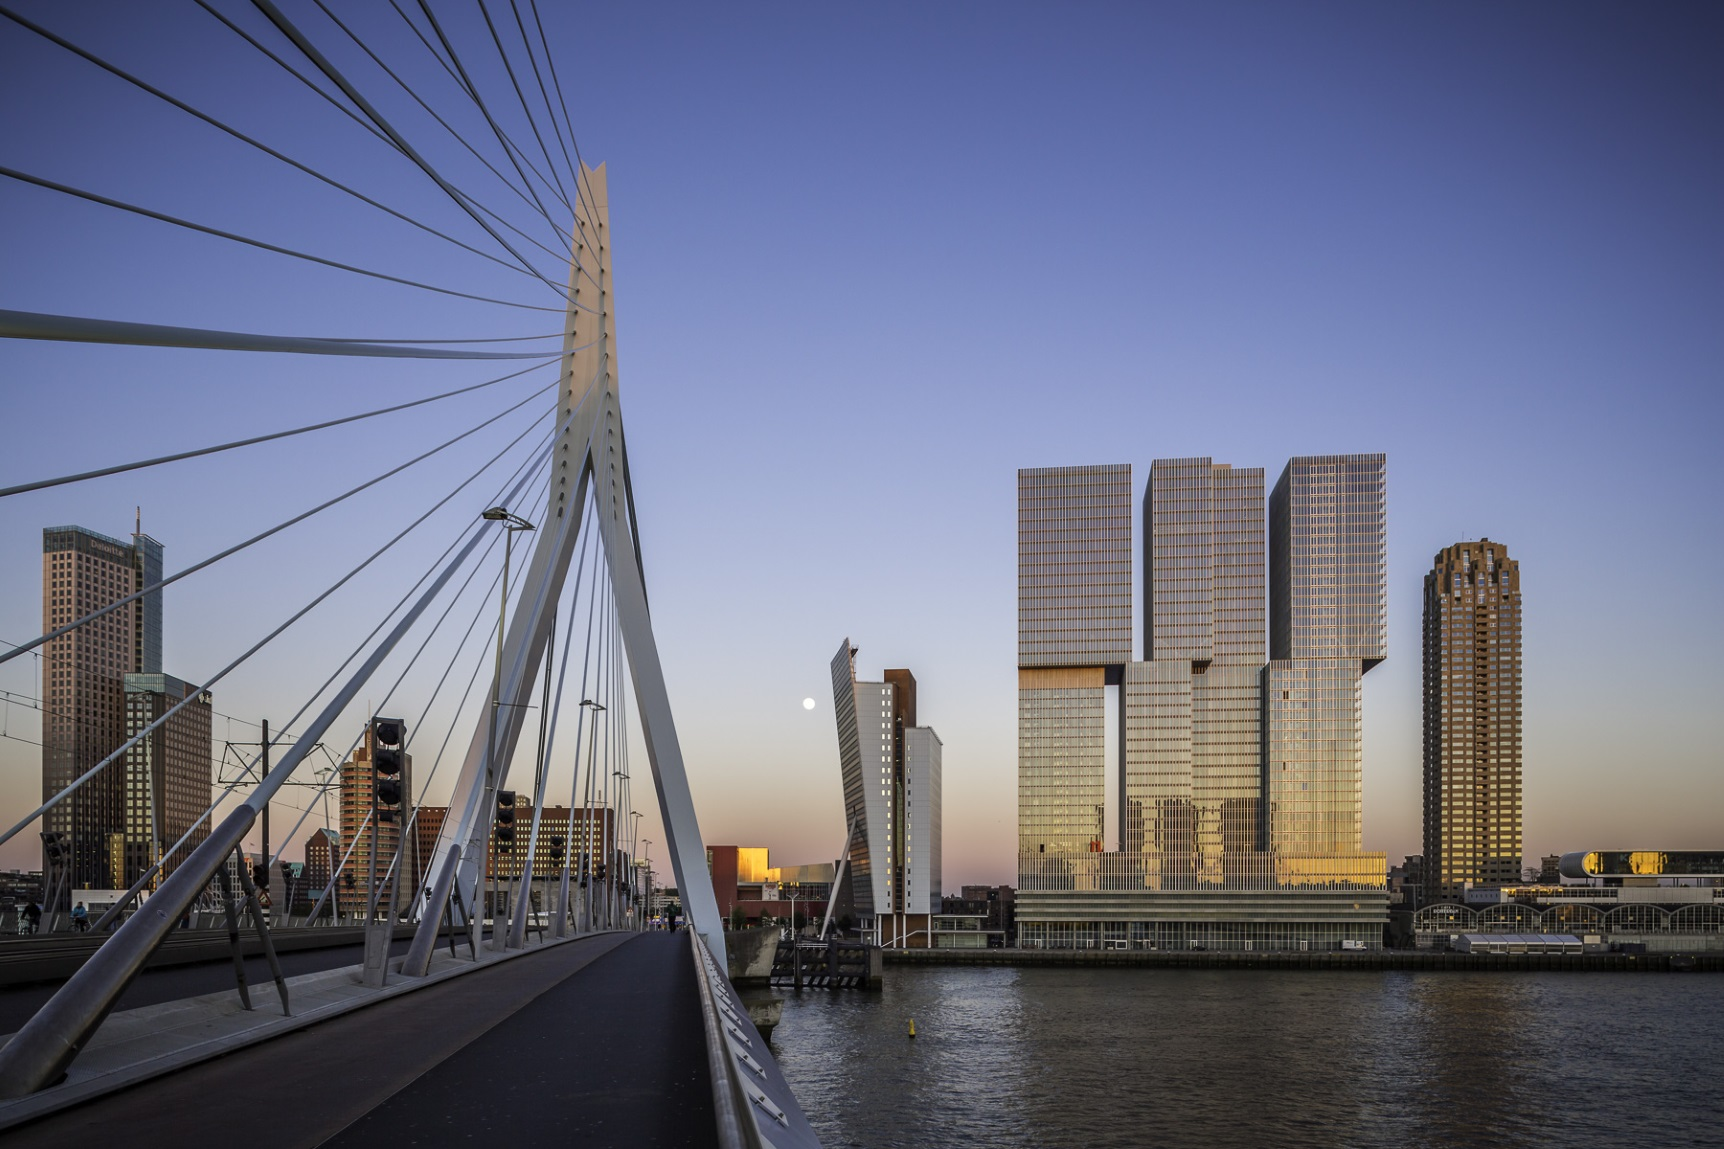 rotterdam-skyline-from-erasmus-bridge-mabry-campbell-lr